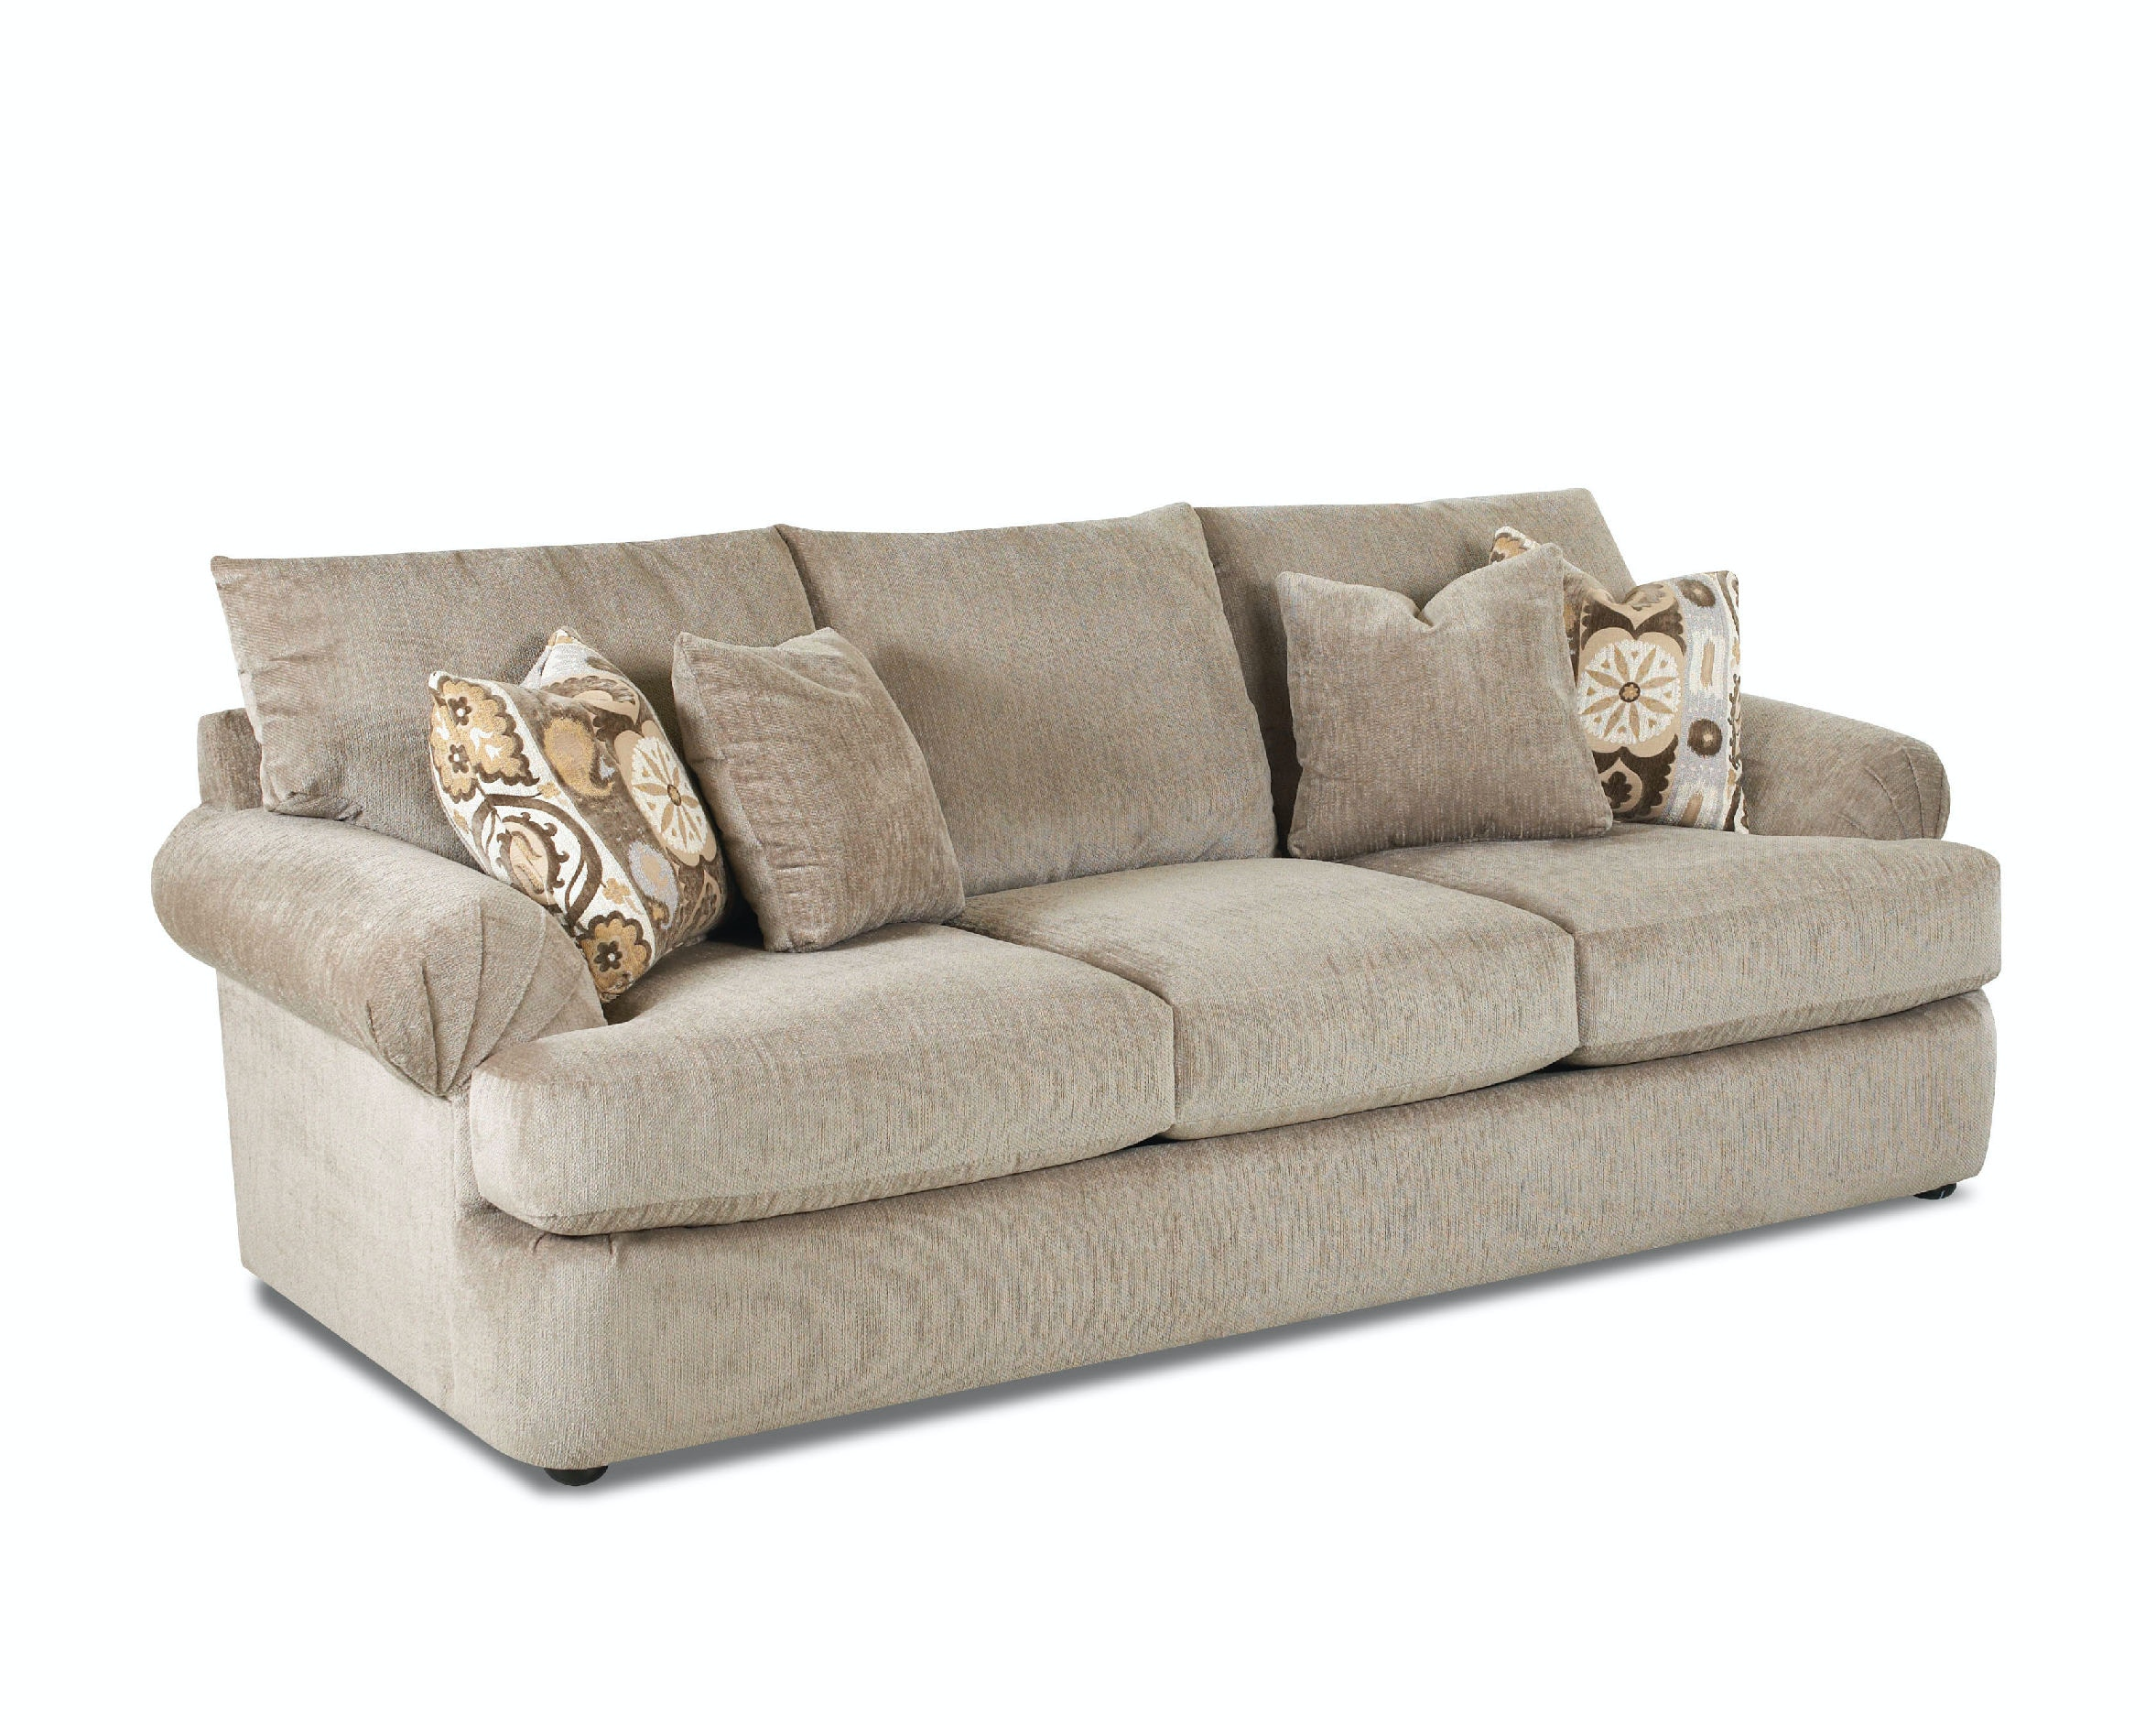 Hanks Furniture Rogers Ar Home Design Ideas And Pictures